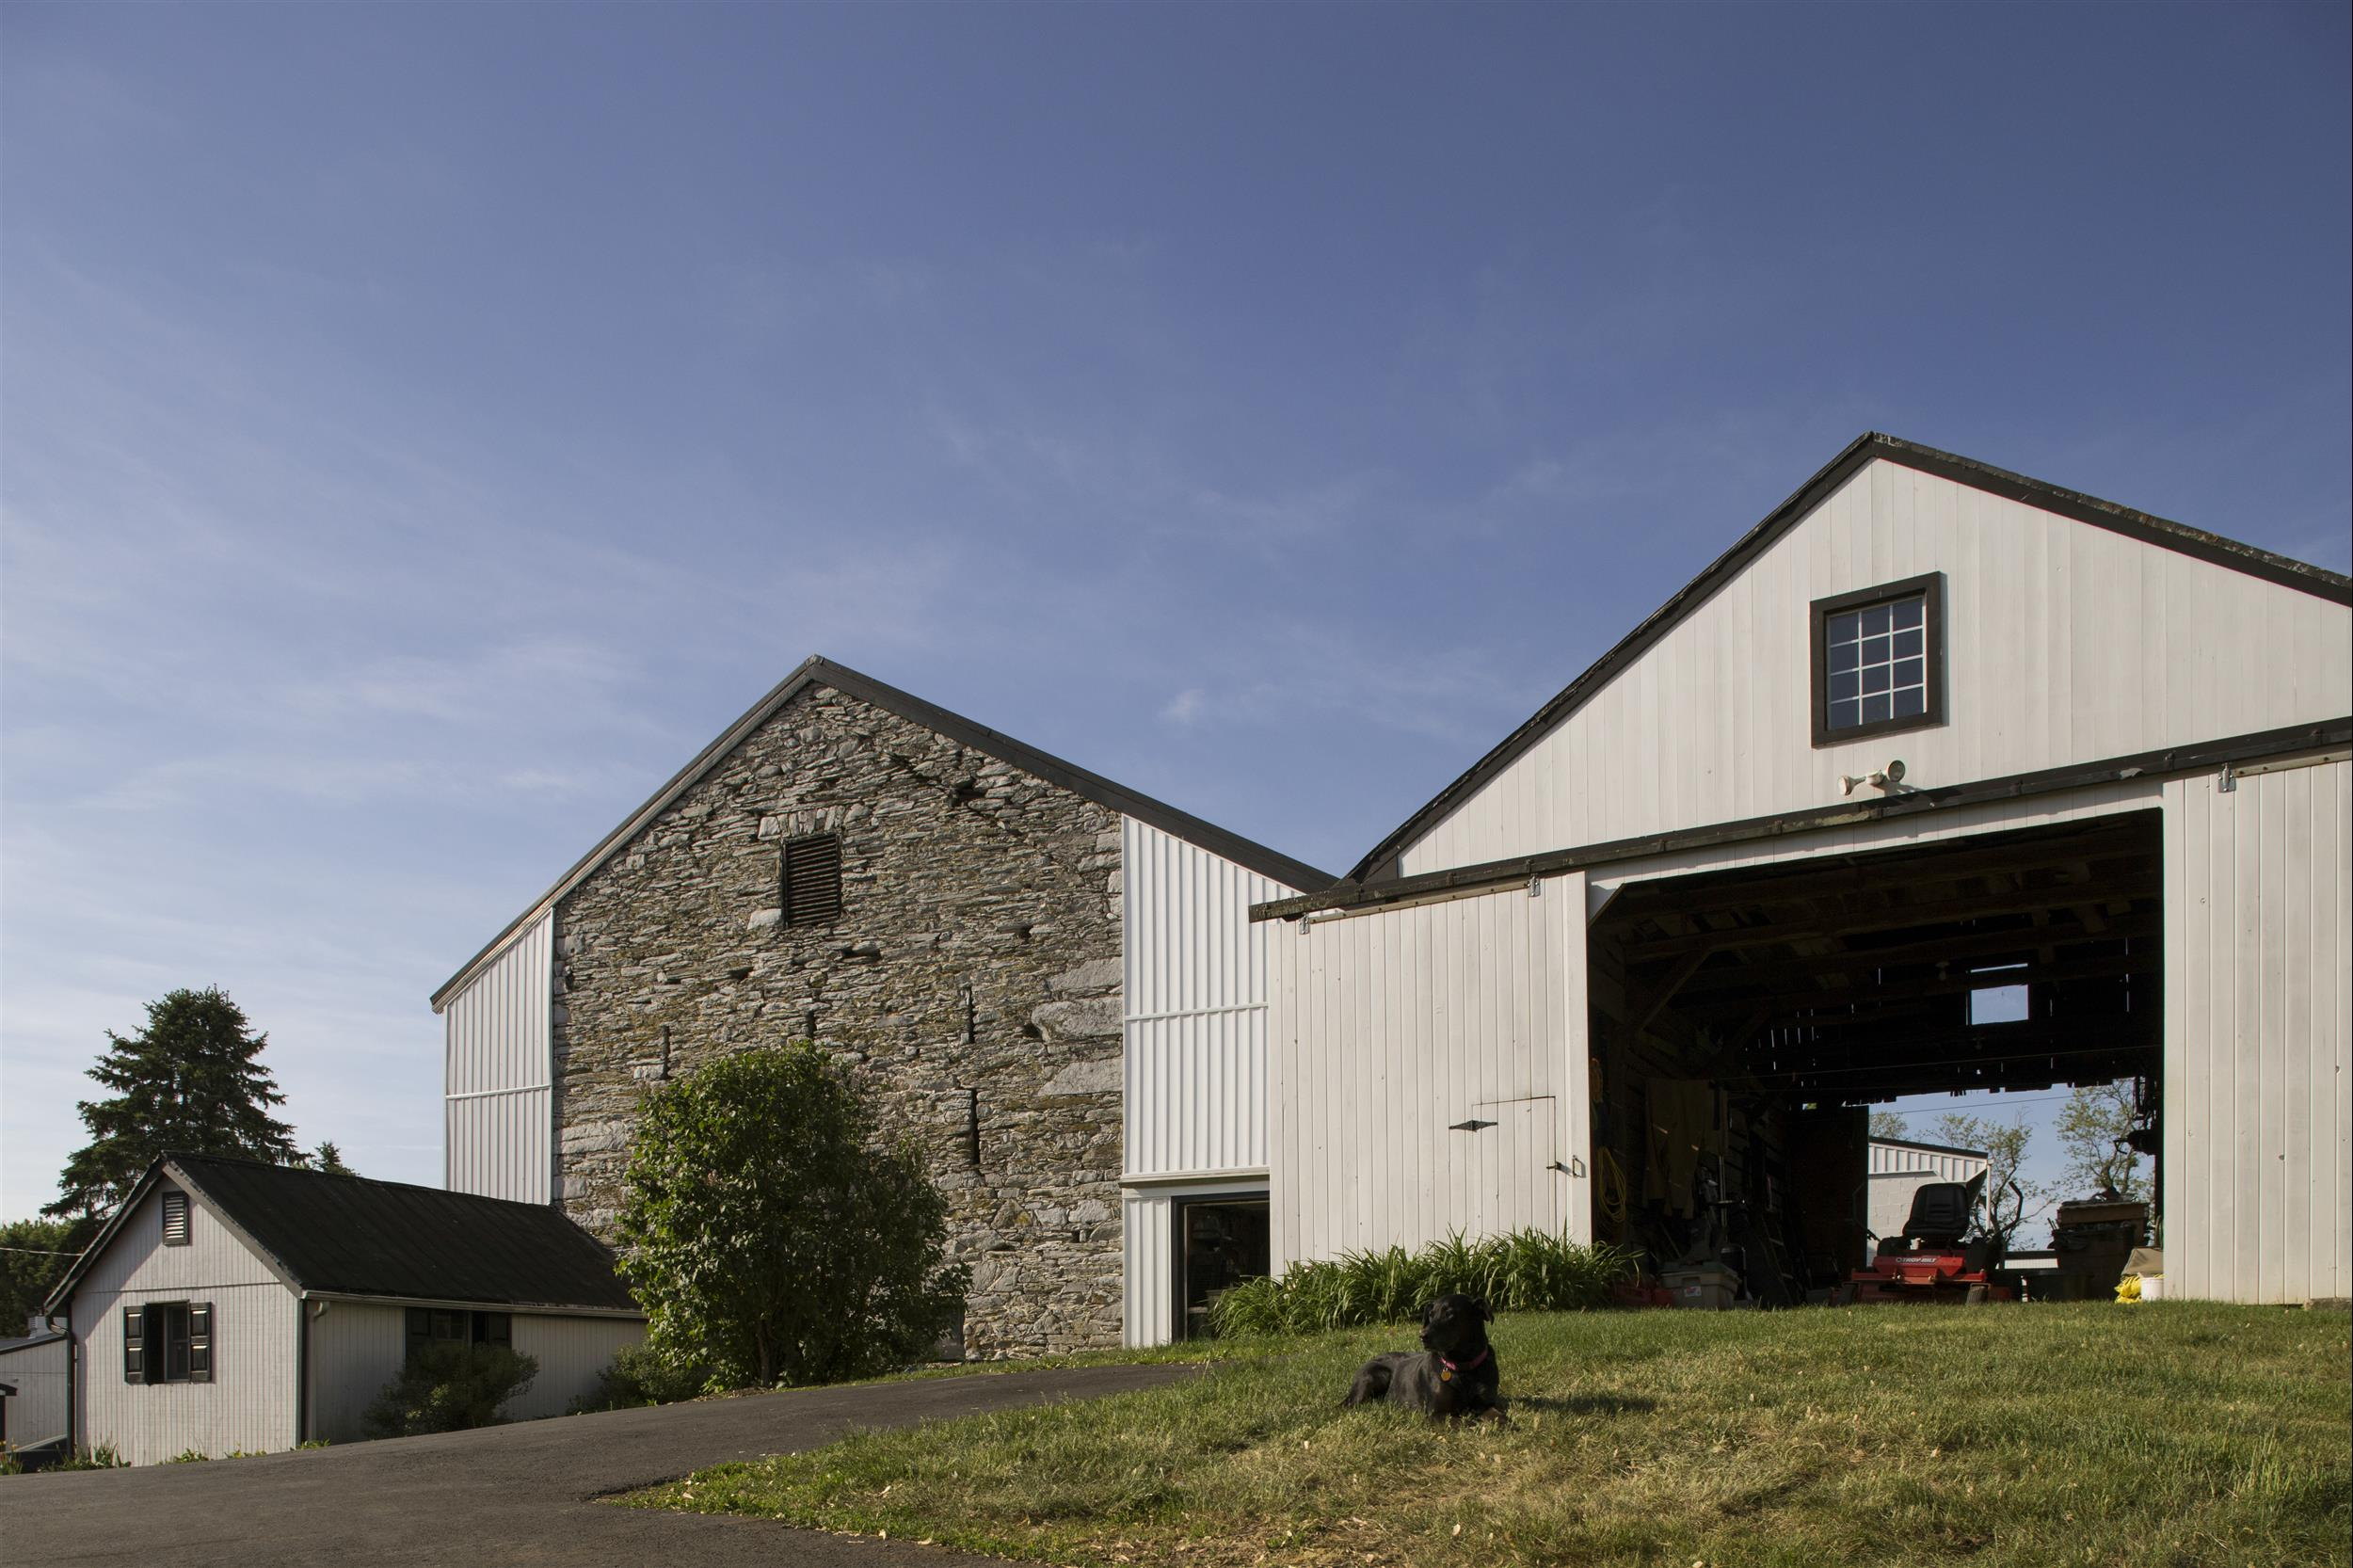 exterior-barn-on-grounds.jpg